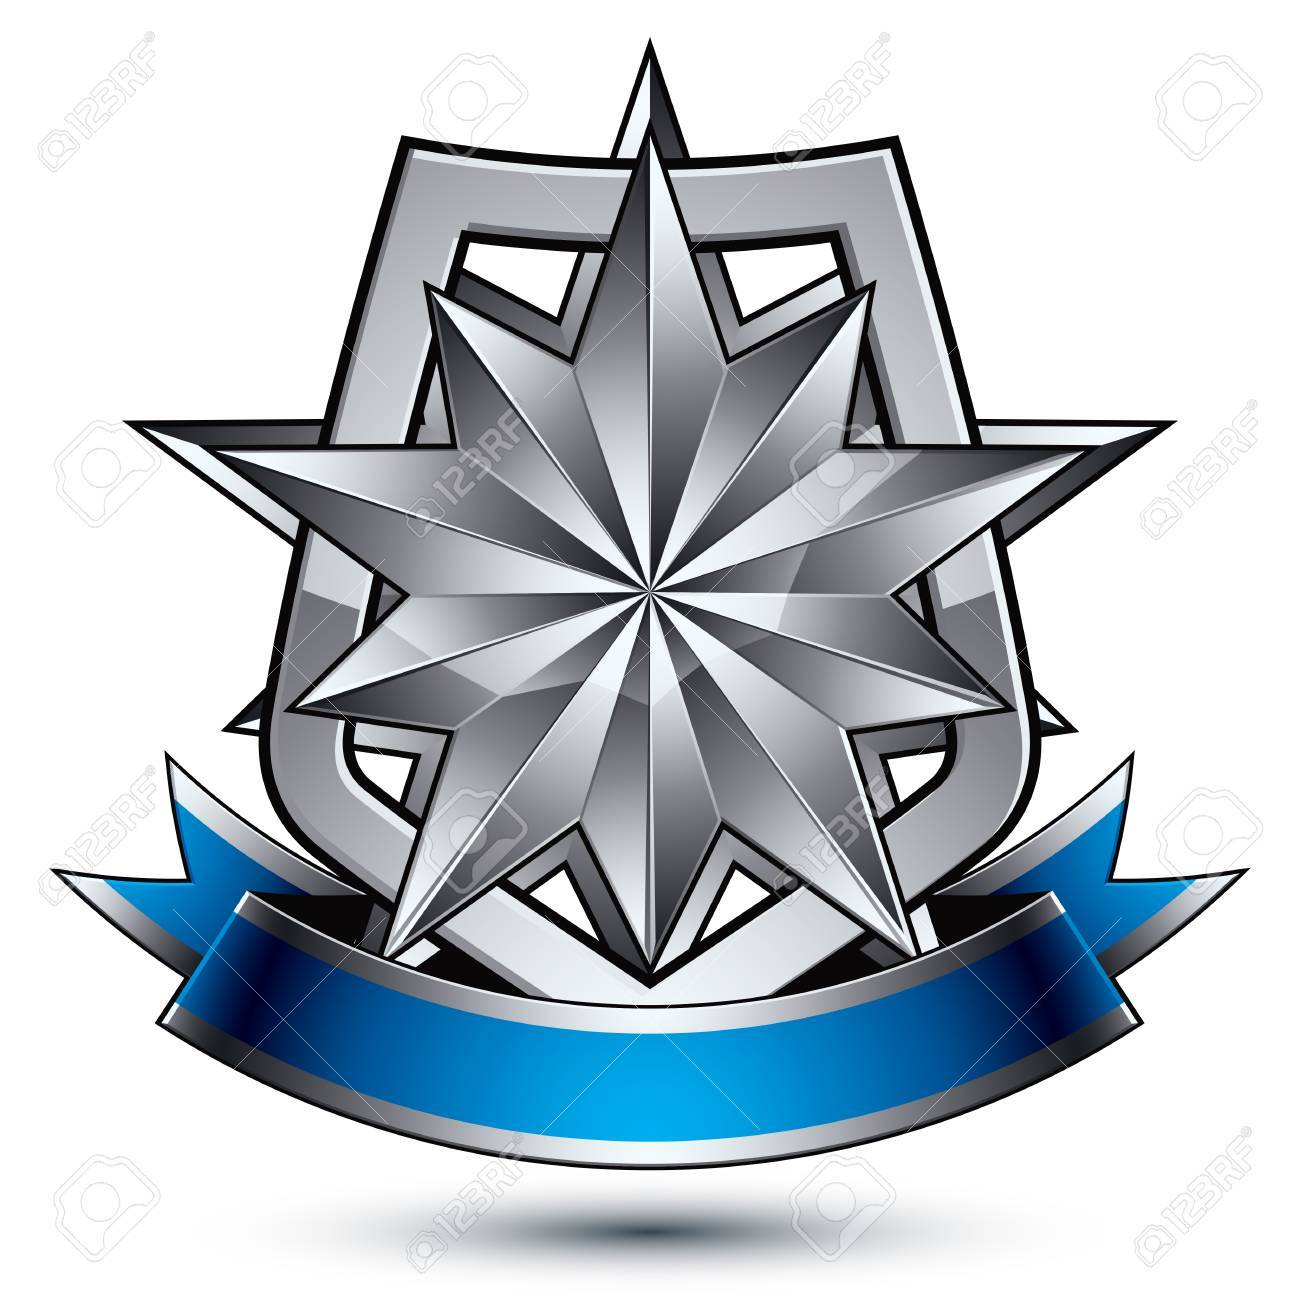 Heraldic Vector Template With Polygonal Silver Star Placed On ...